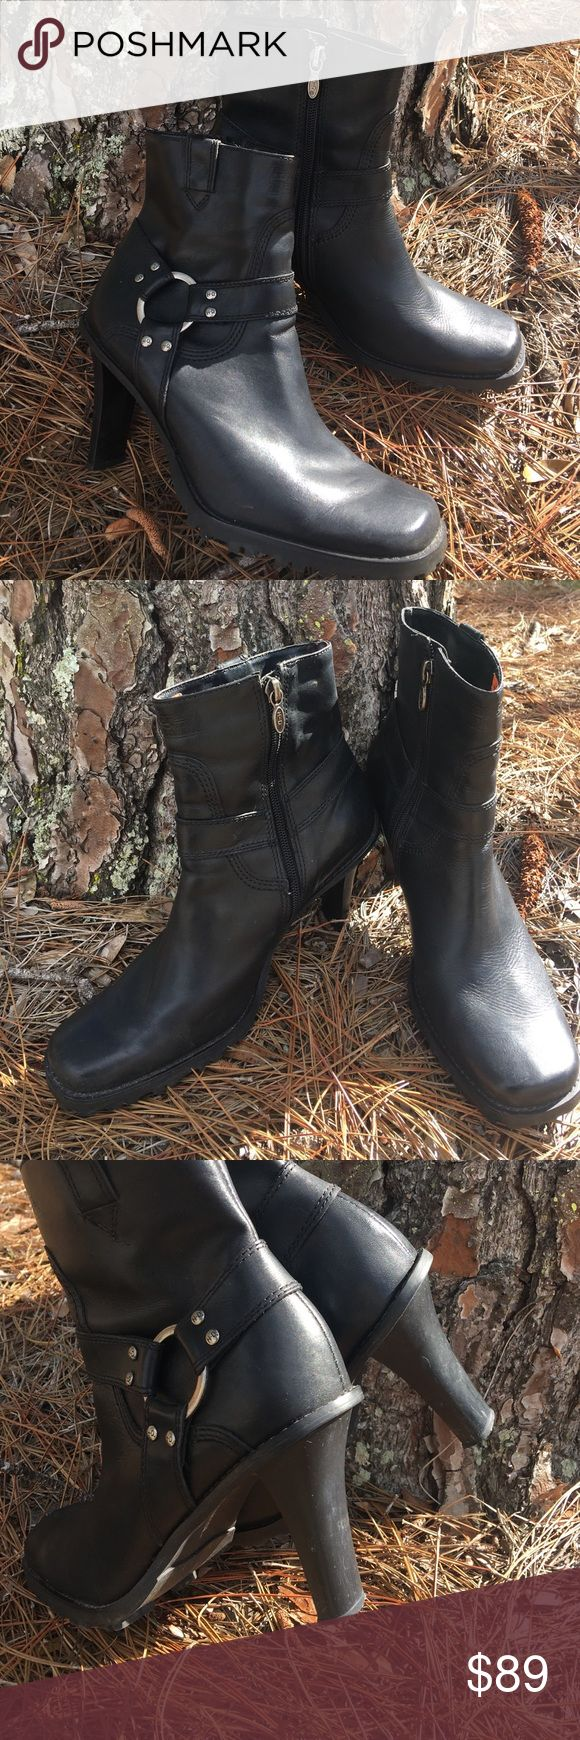 "Harley Davidson Black Mid Calf Leather Boots Black Square toe Chic Harley boots with silver hardware and 4"" heel with inside zipper. Great Condition Harley-Davidson Shoes Heeled Boots"